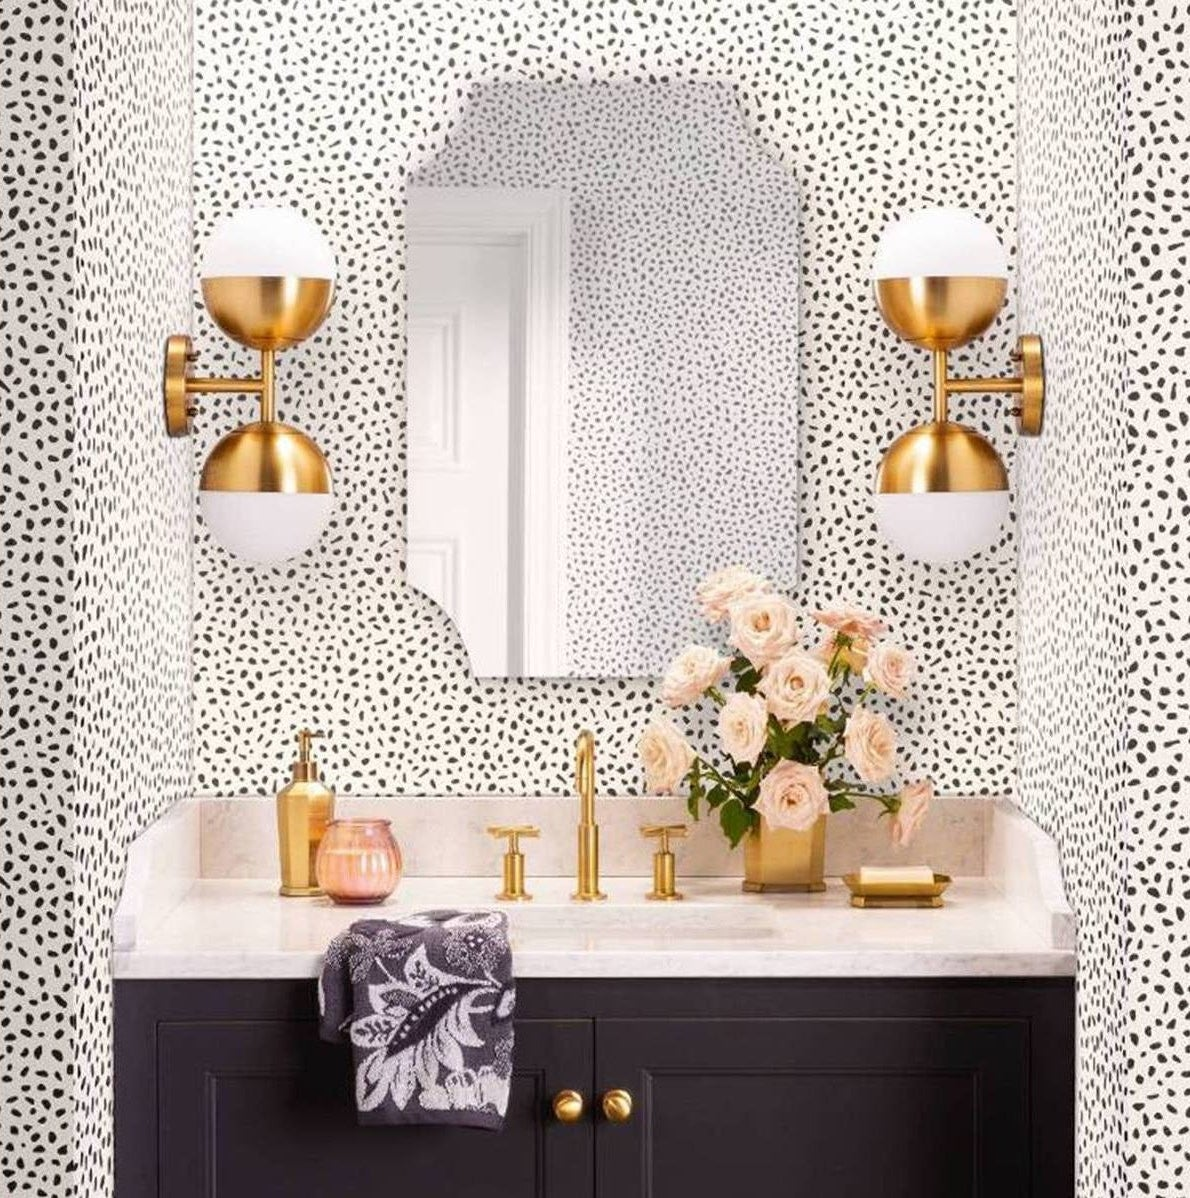 The spotted wallpaper on bathroom walls